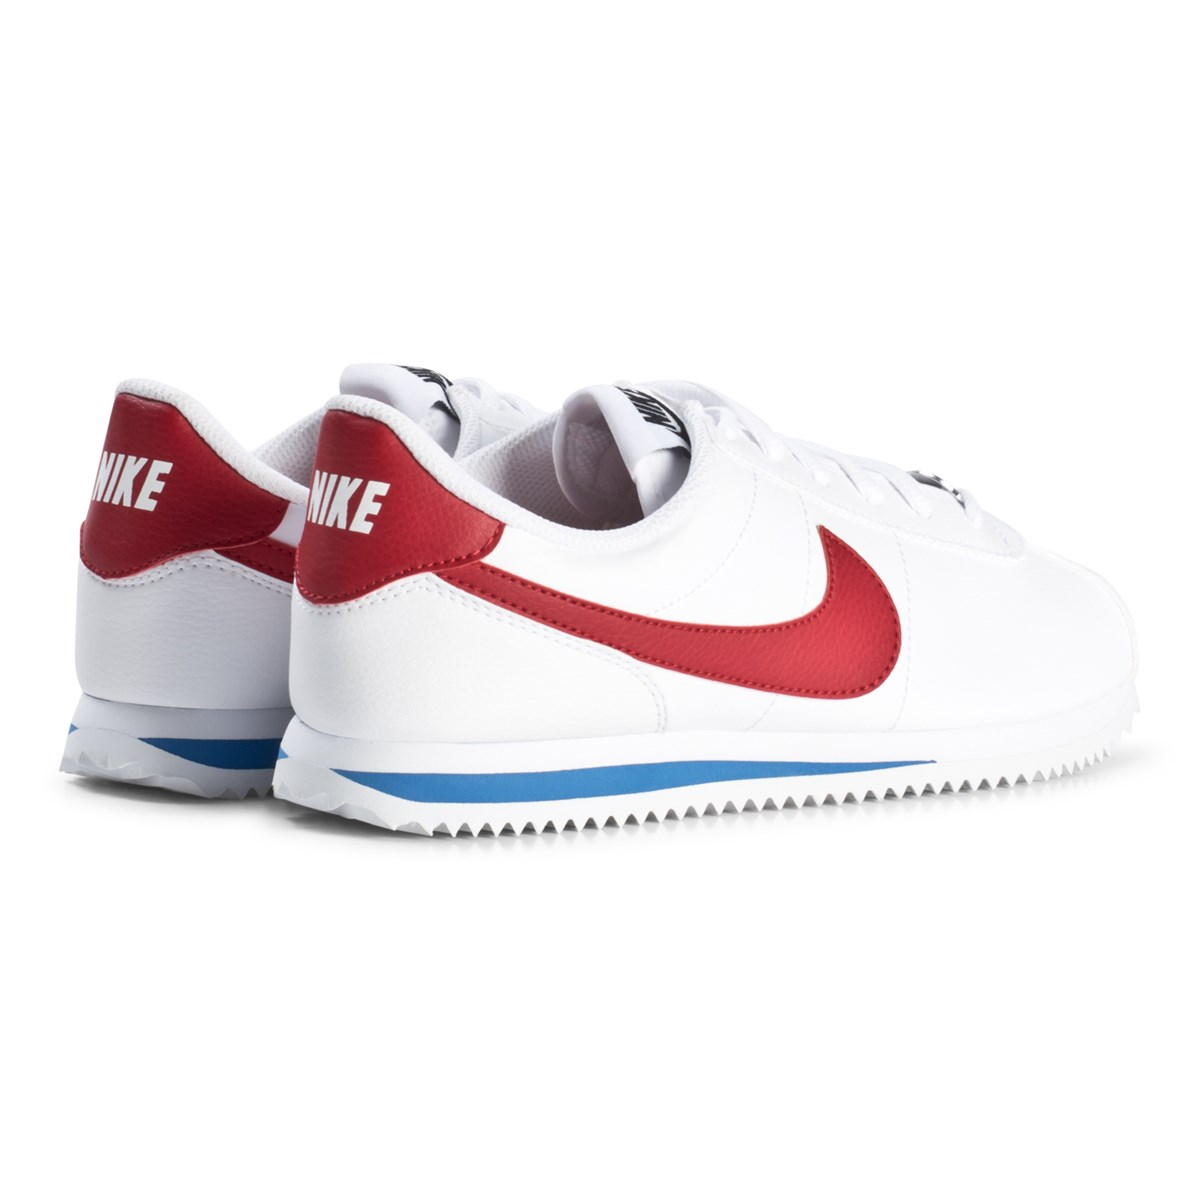 size 40 69774 f6759 NIKE - White and Red Cortez Junior Sneakers - Babyshop.com